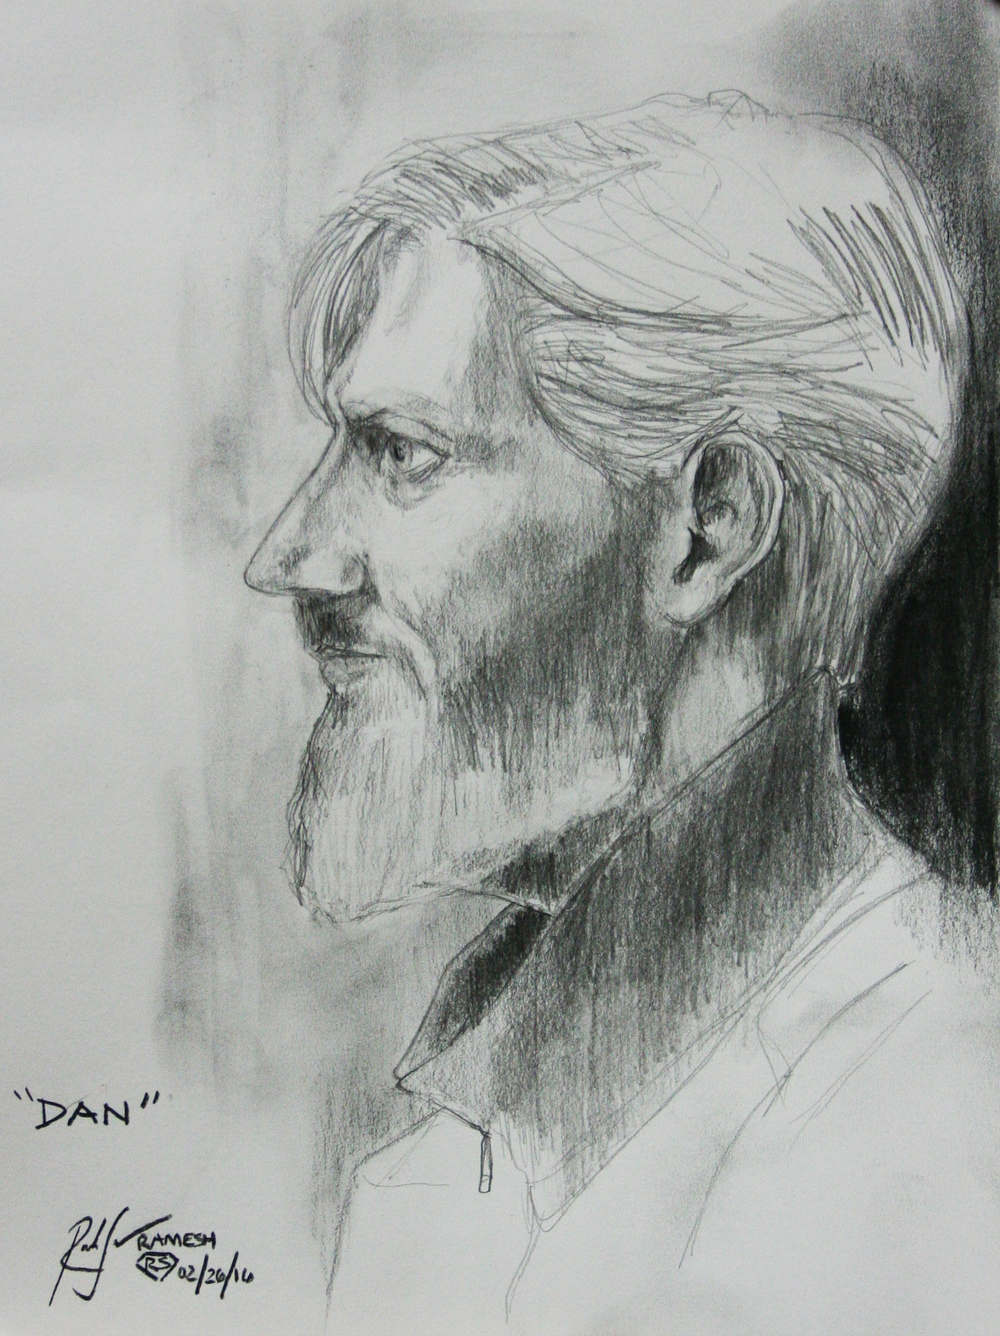 Ramesh Subramanium did this 2-hour drawing.